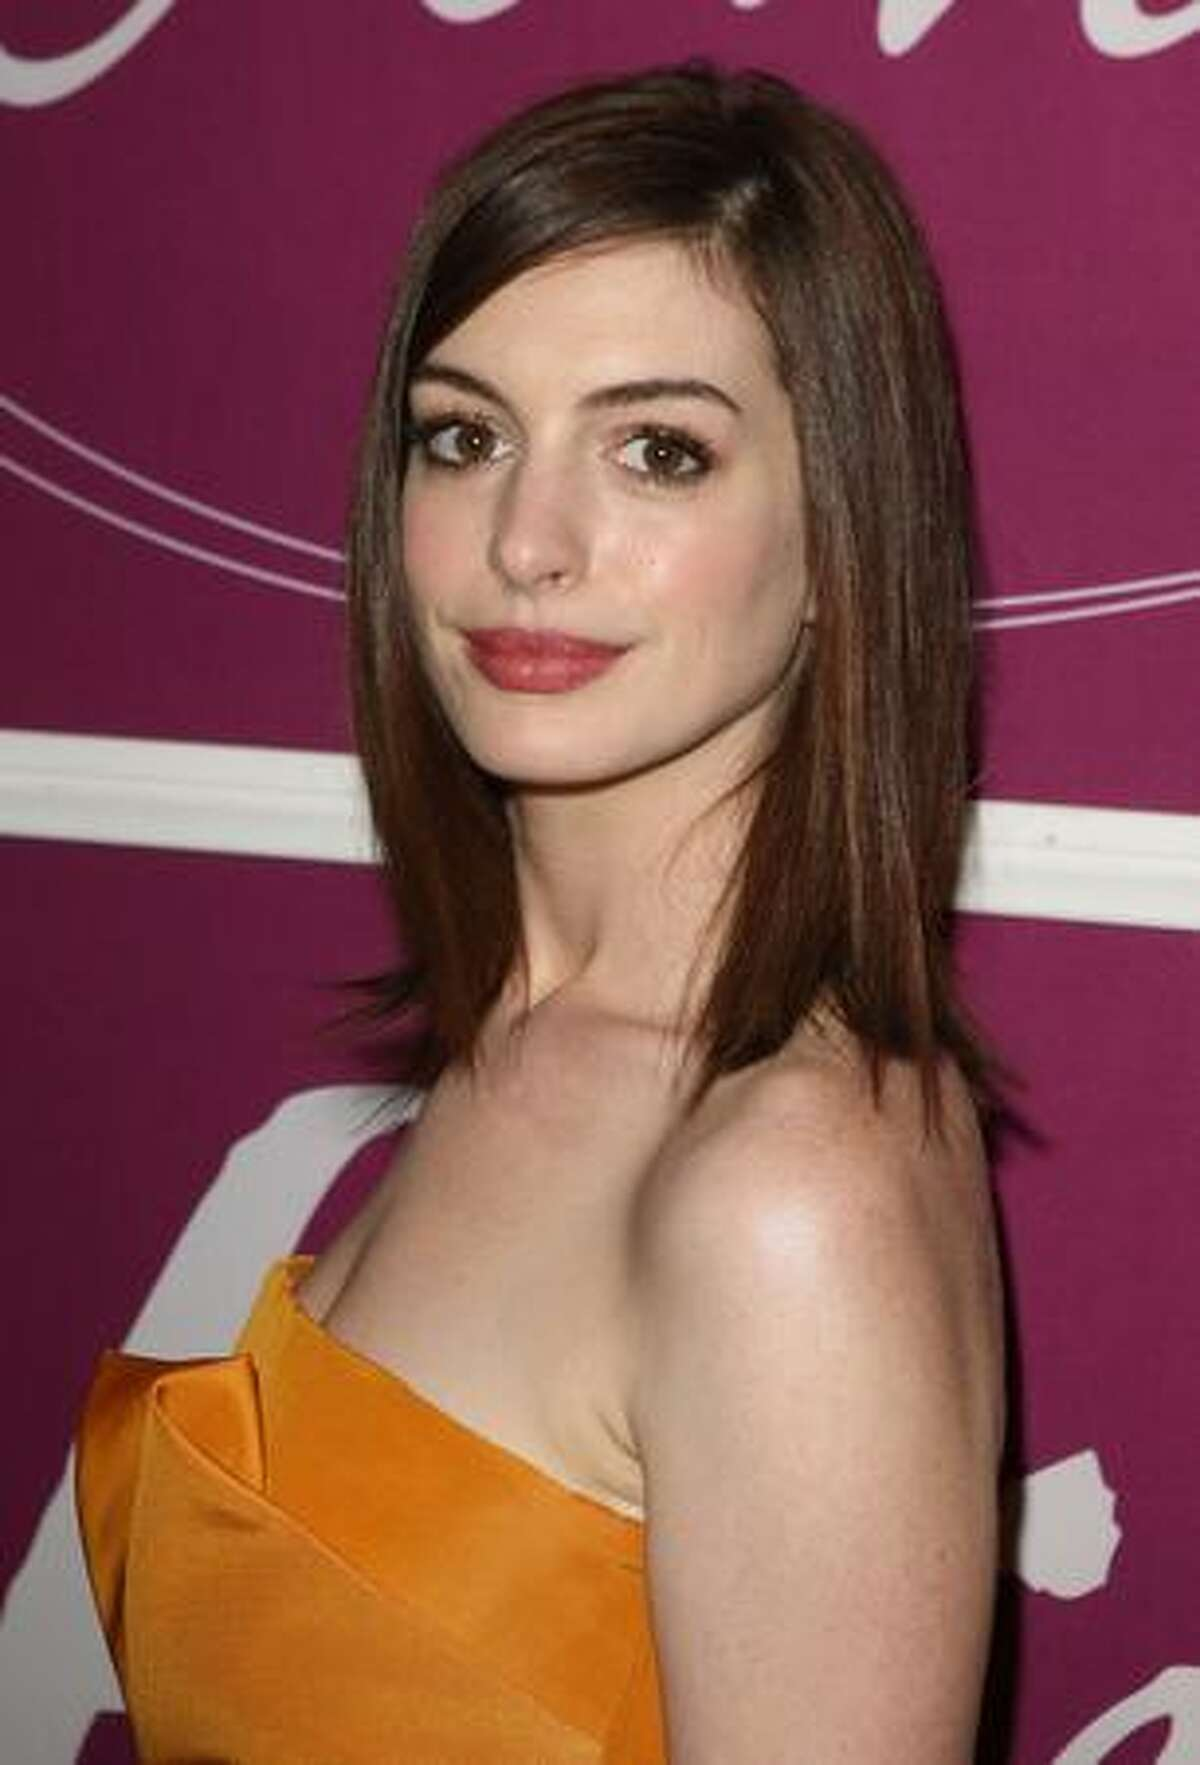 Actress Anne Hathaway arrives at Variety's 1st Annual Power of Women Luncheon at the Beverly Wilshire Hotel in Beverly Hills, California.